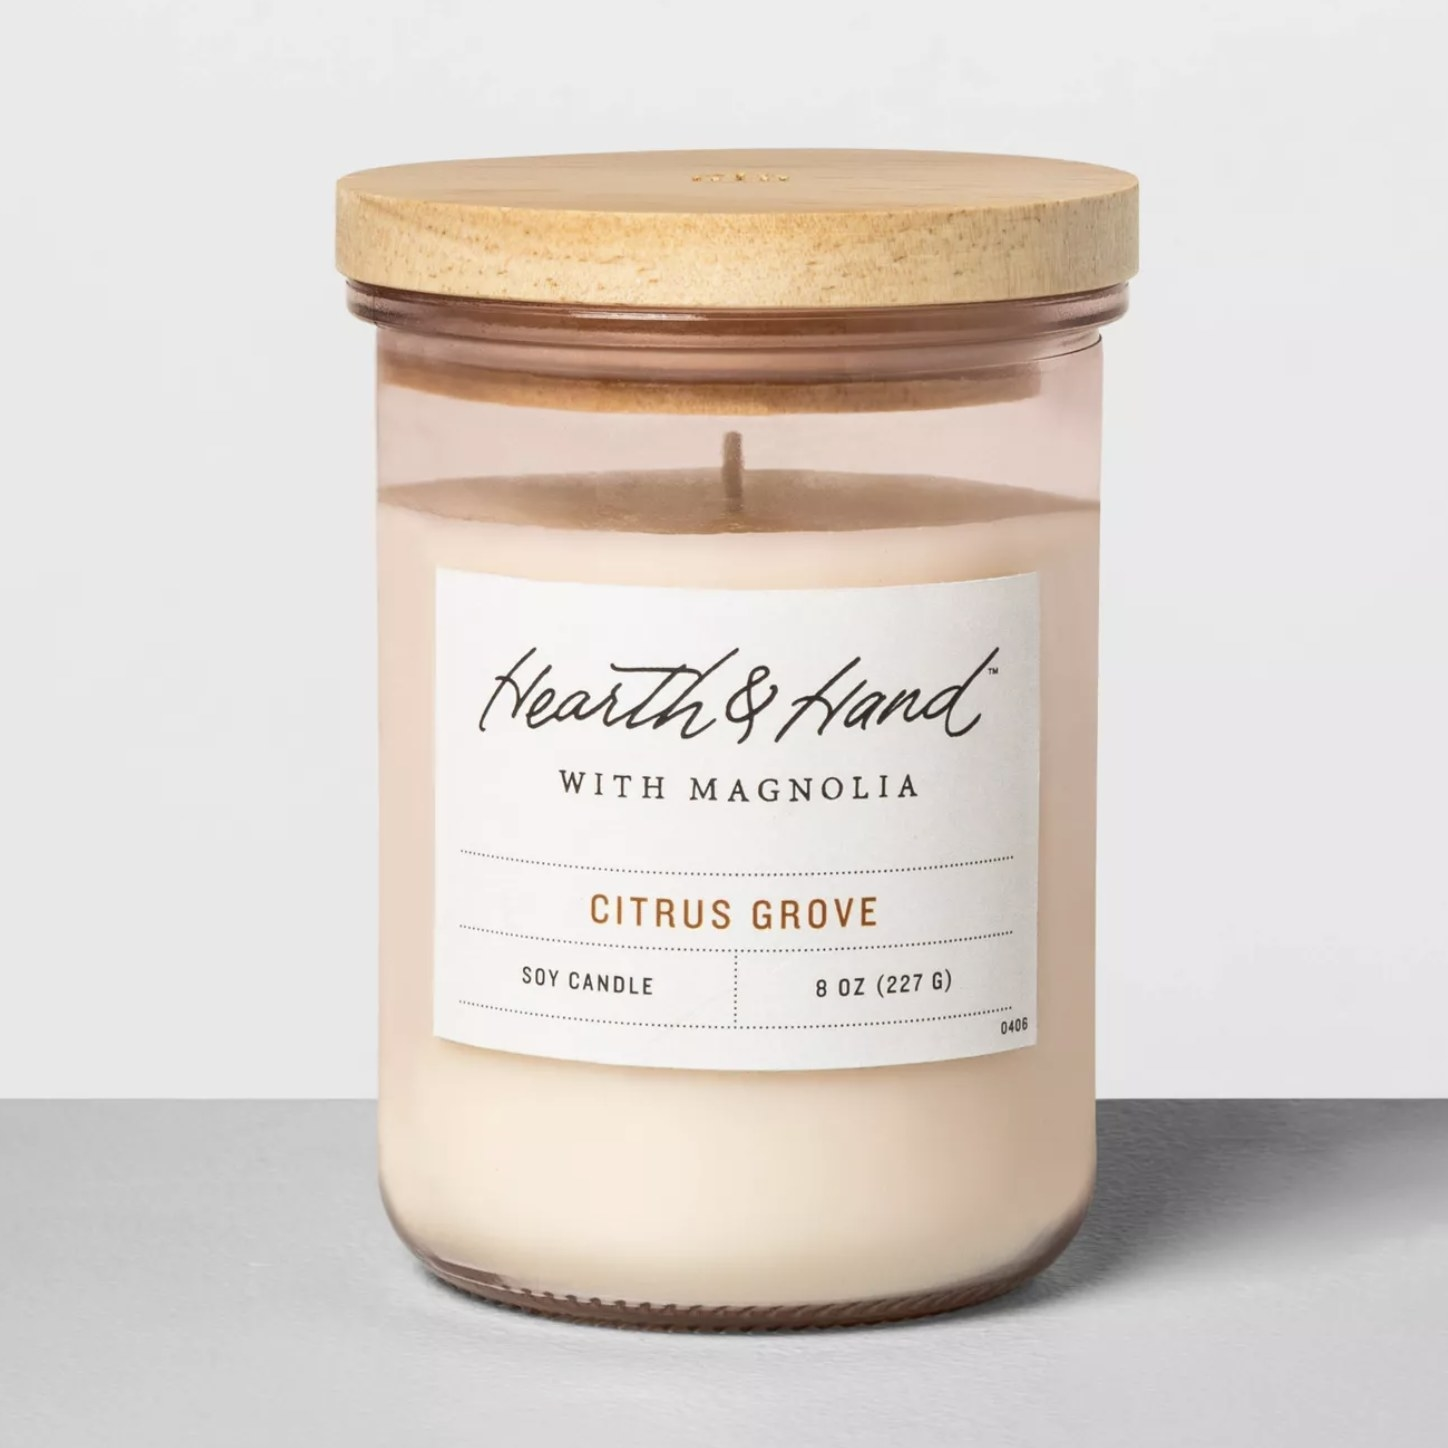 A soy candle in a glass jar with a wood lid in a citrus grove scent